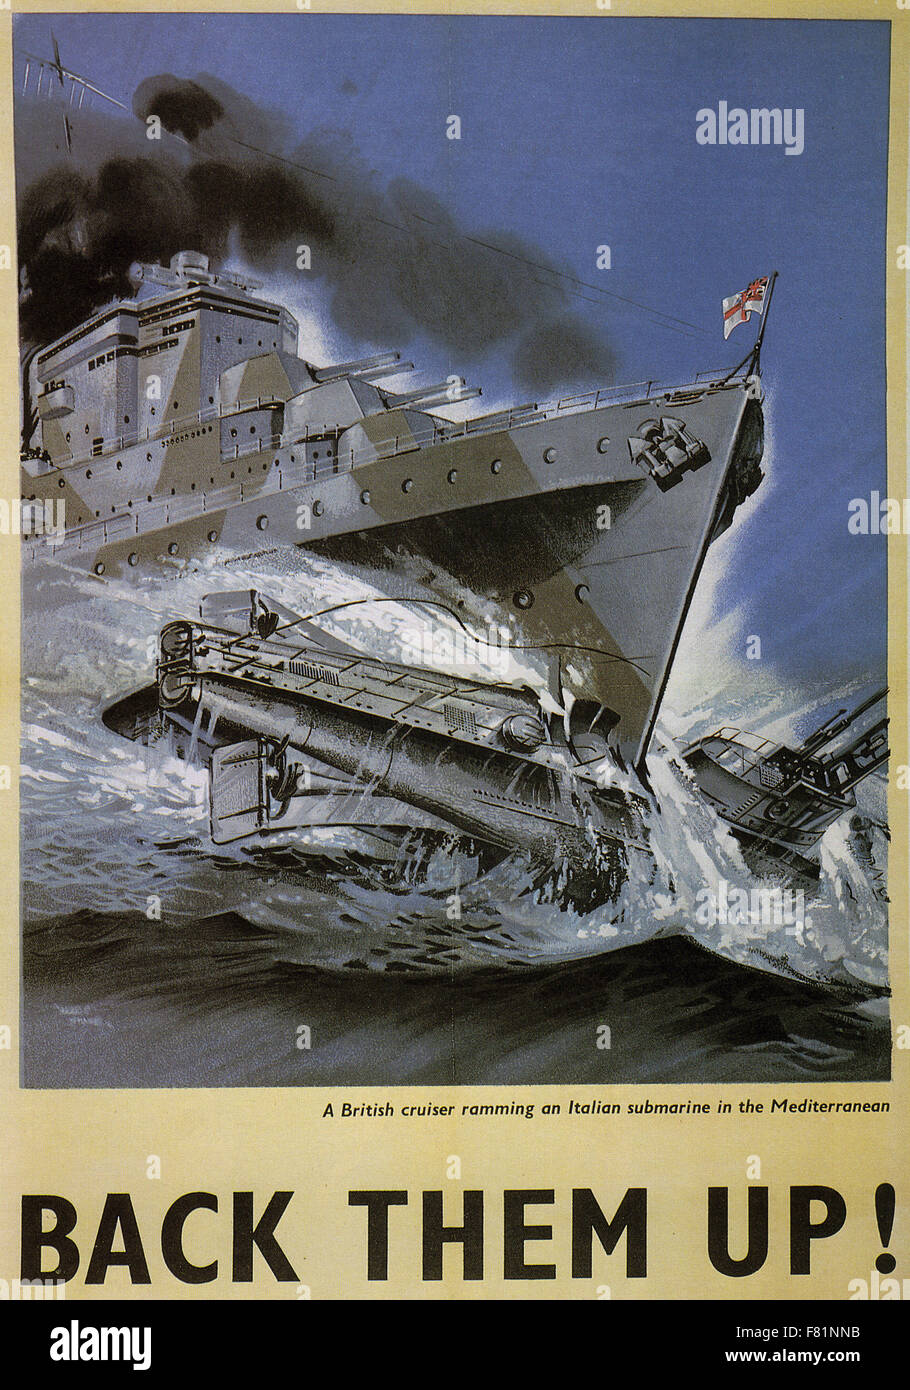 BACK THEM UP ! British WW2 poster about 1943 showing a Royal Navy cruiser ramming an Italian submarine in the Mediterranean. - Stock Image